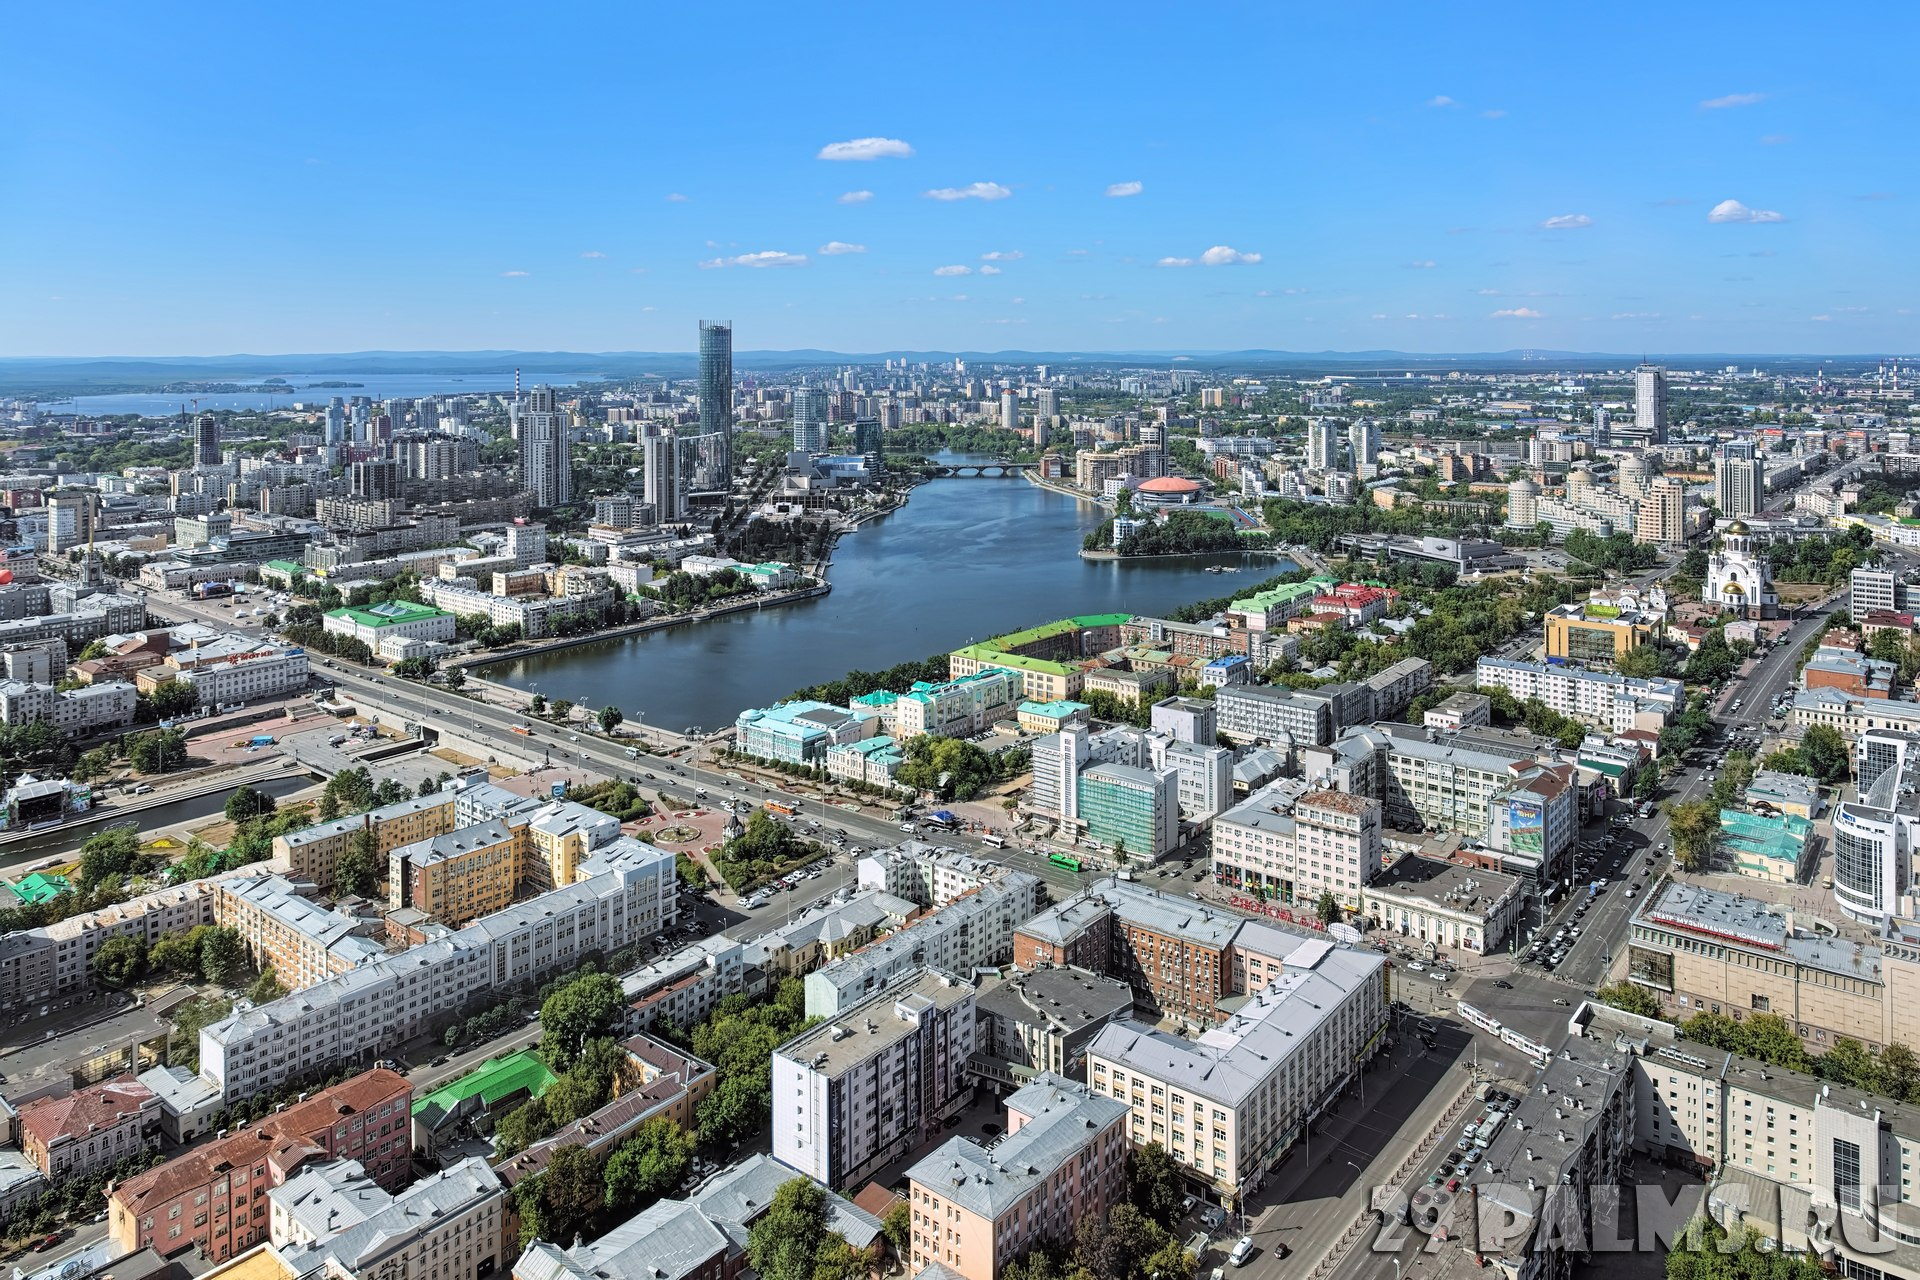 Россия. Панорама Екатеринбурга. View of Yekaterinburg from observation deck on skyscraper, Russia. Фото markovskiy - Depositphotos